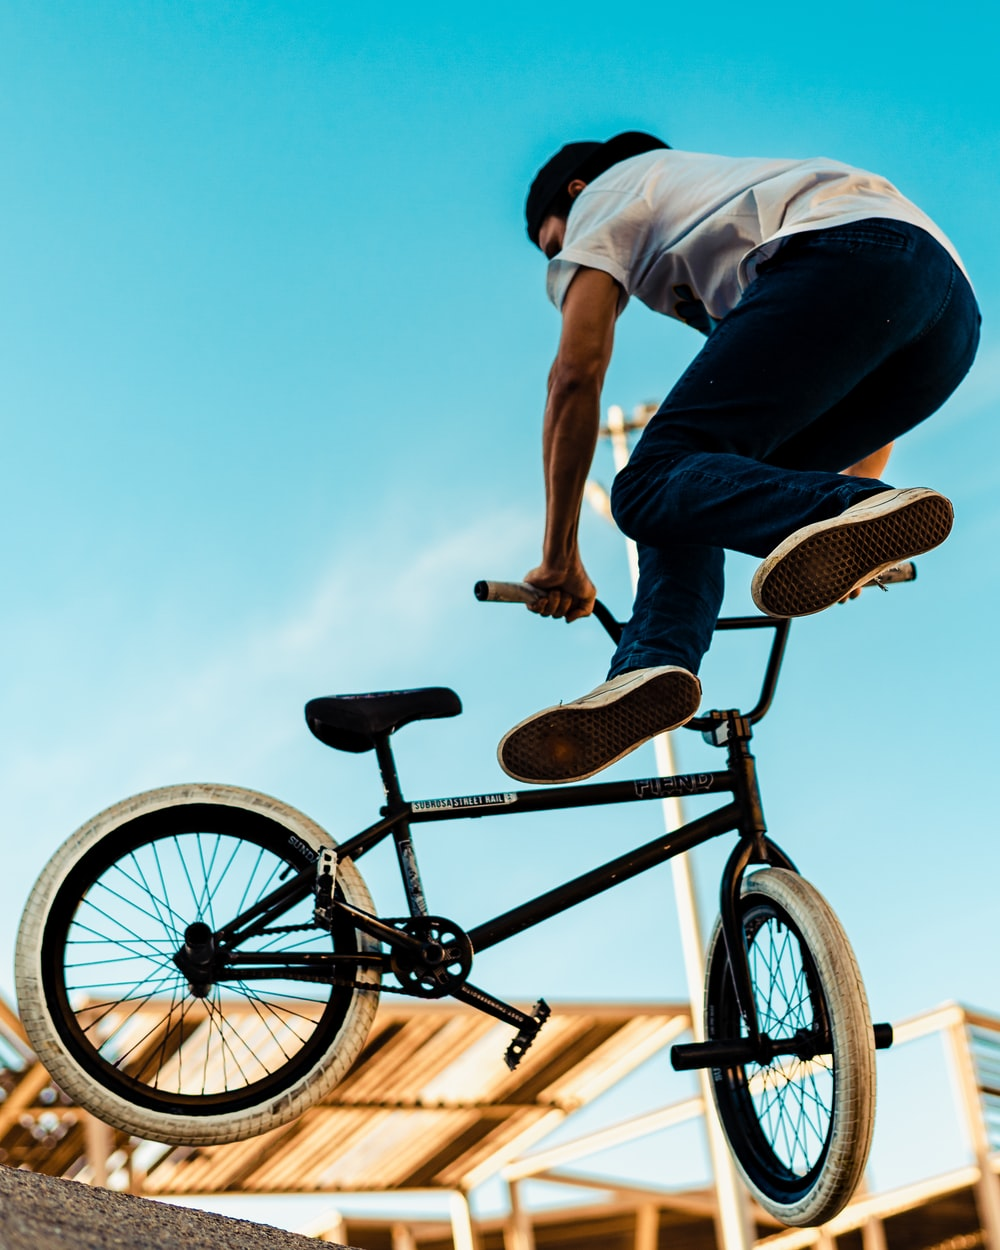 man in blue t-shirt riding on black bicycle